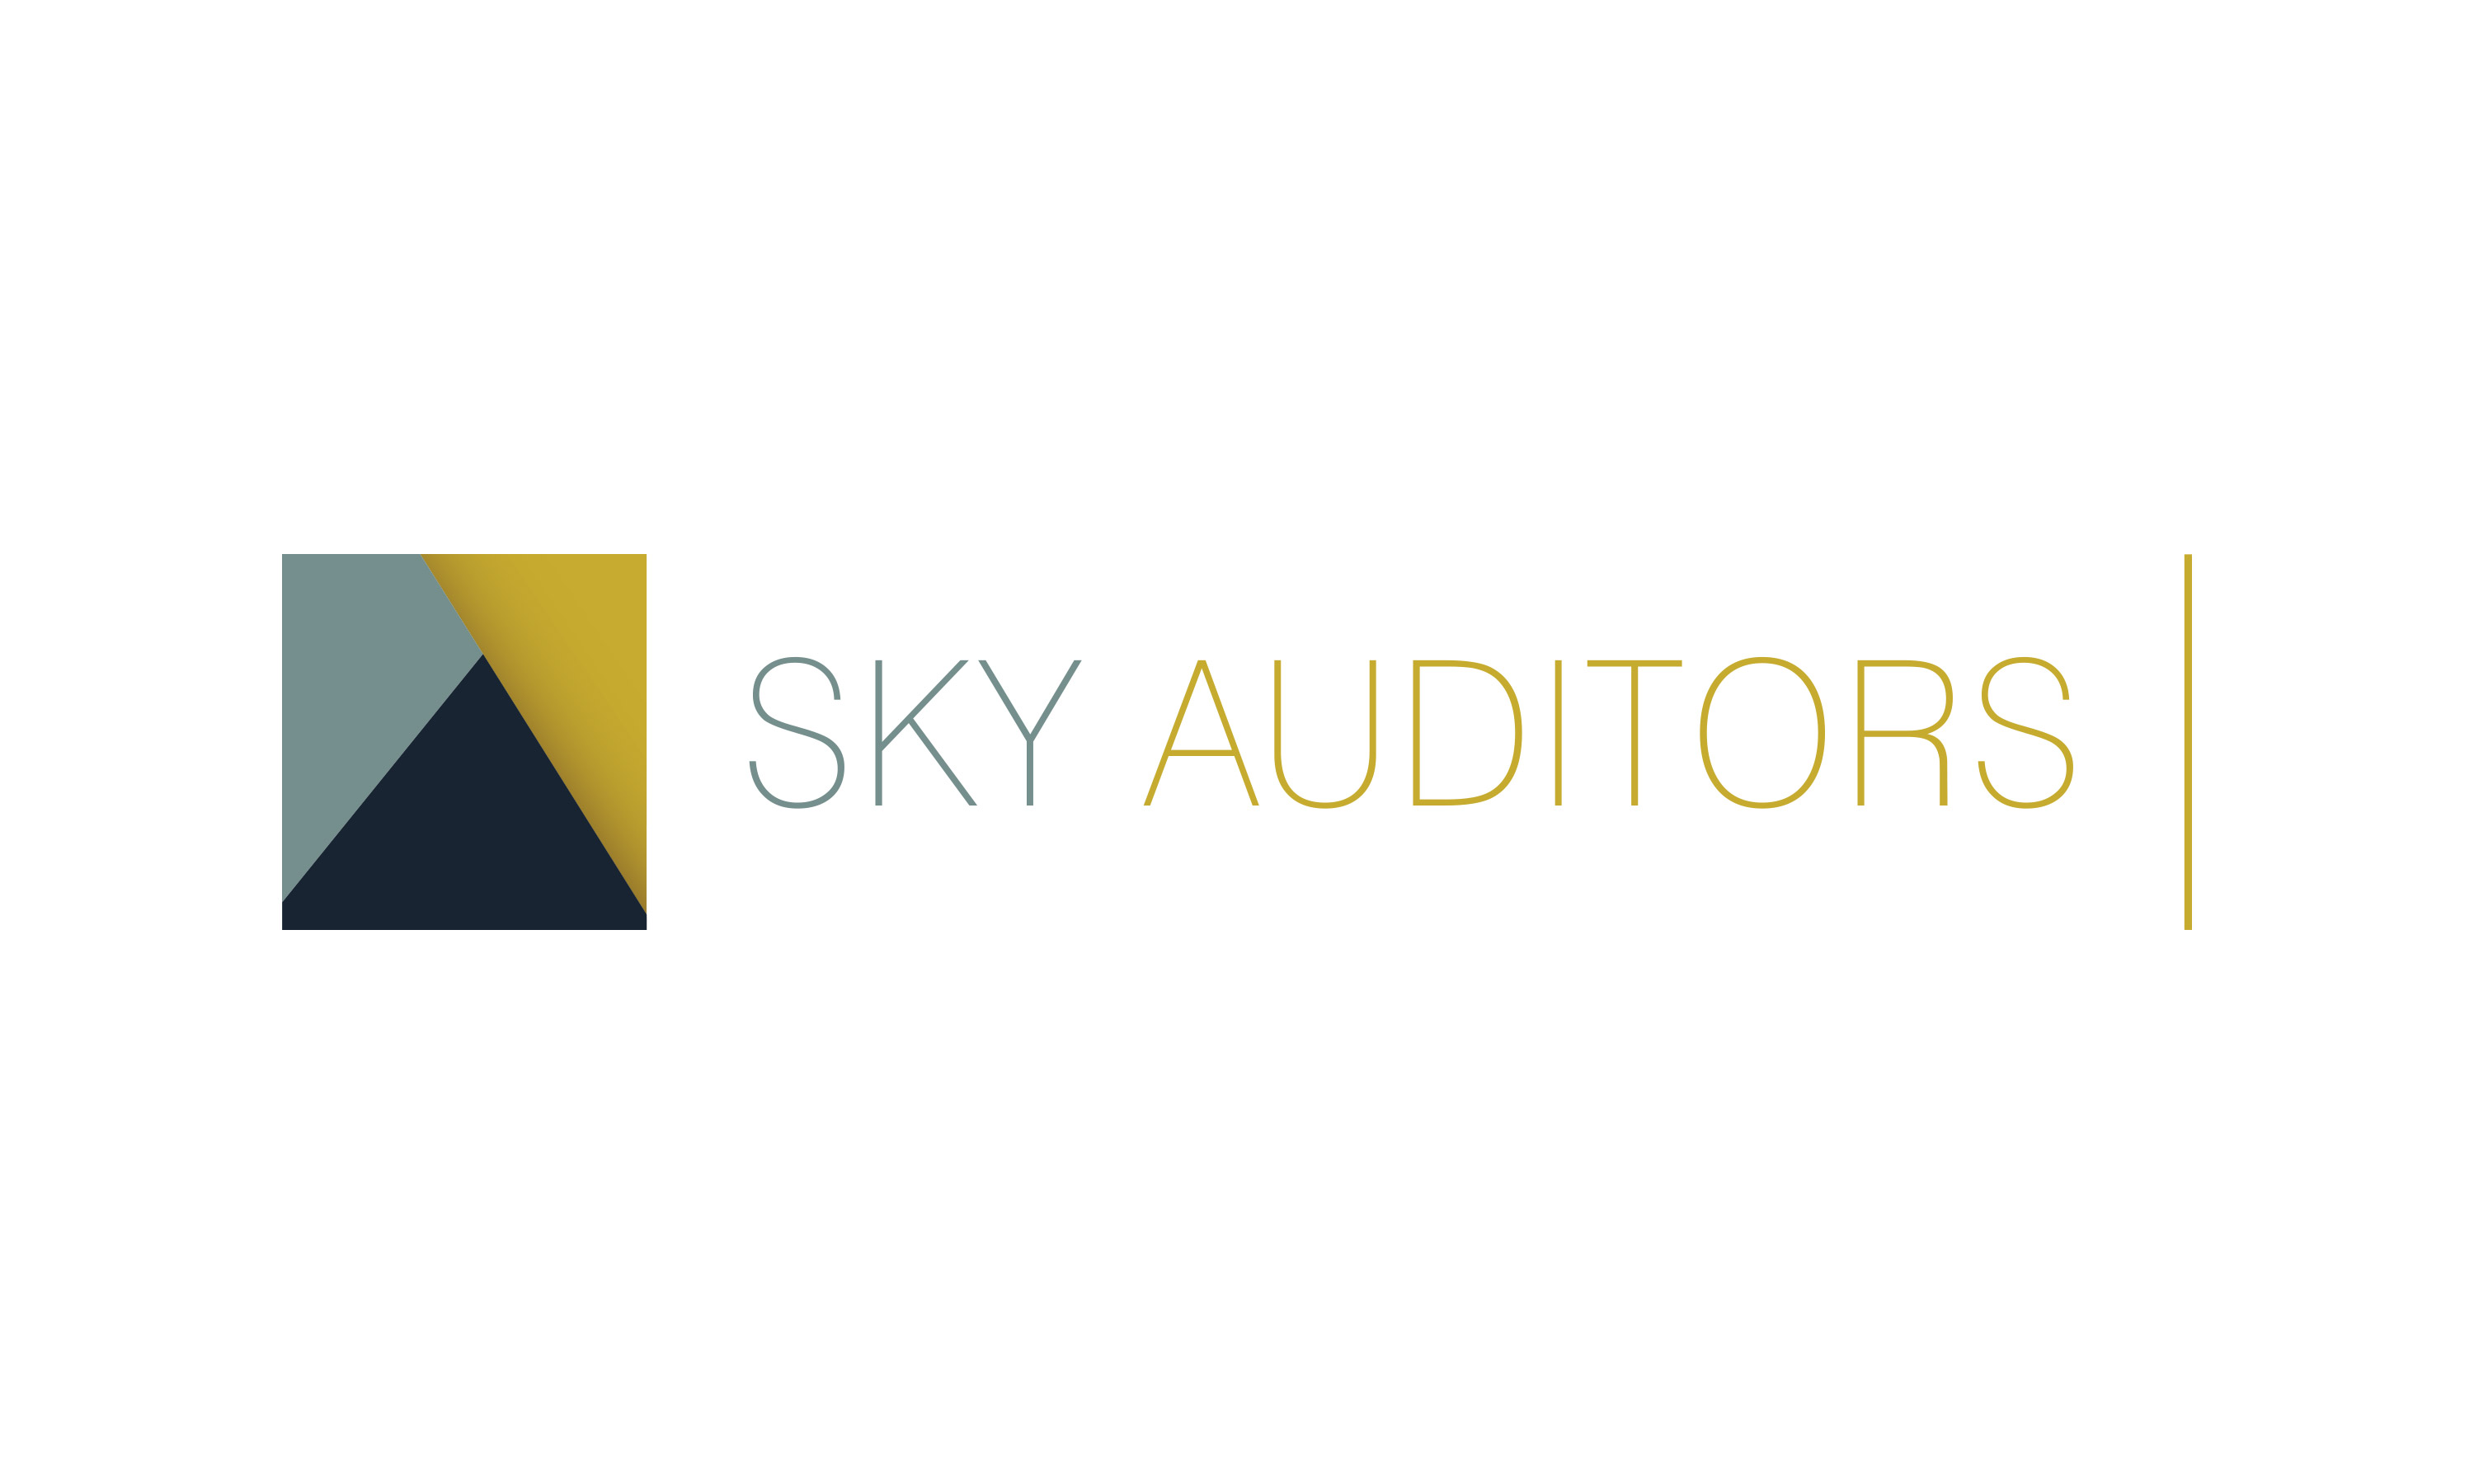 SKY Auditors - Visual Identity